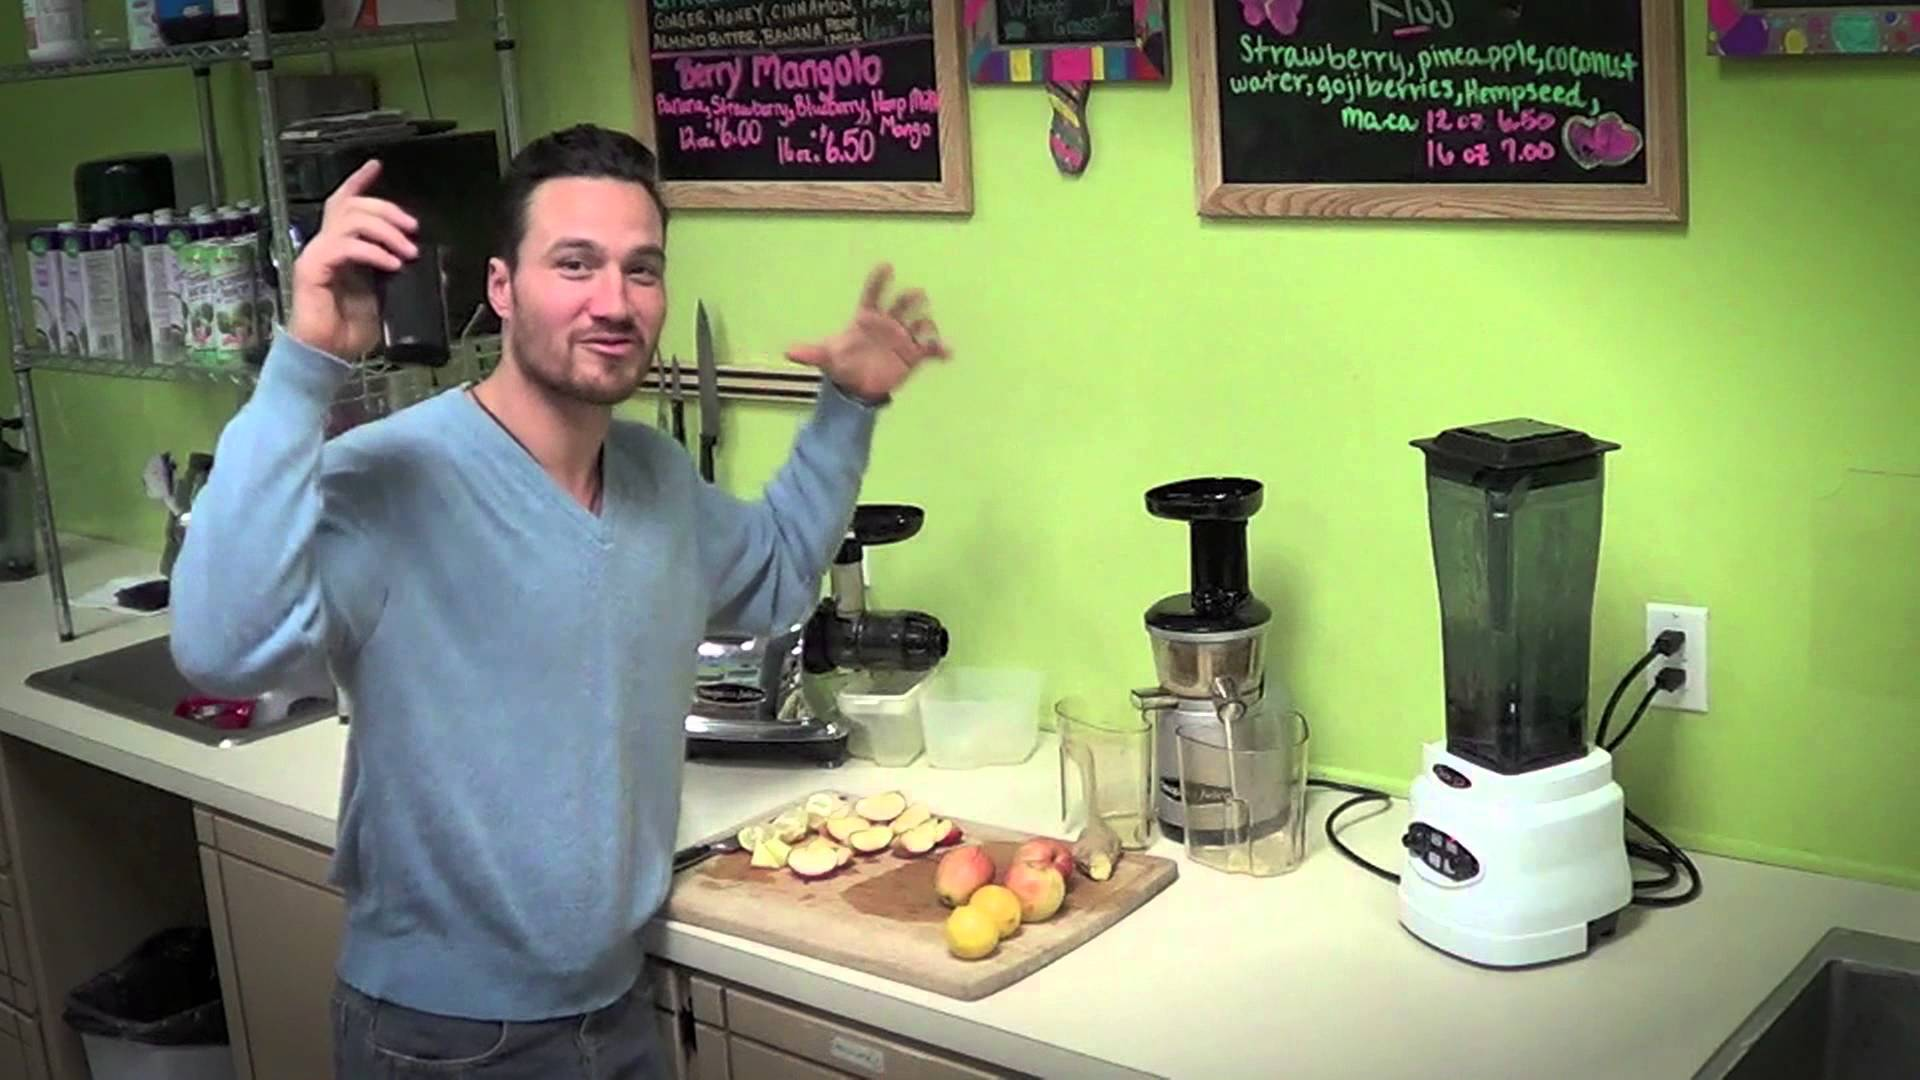 Omega – Juicing in VRT350 Juicer